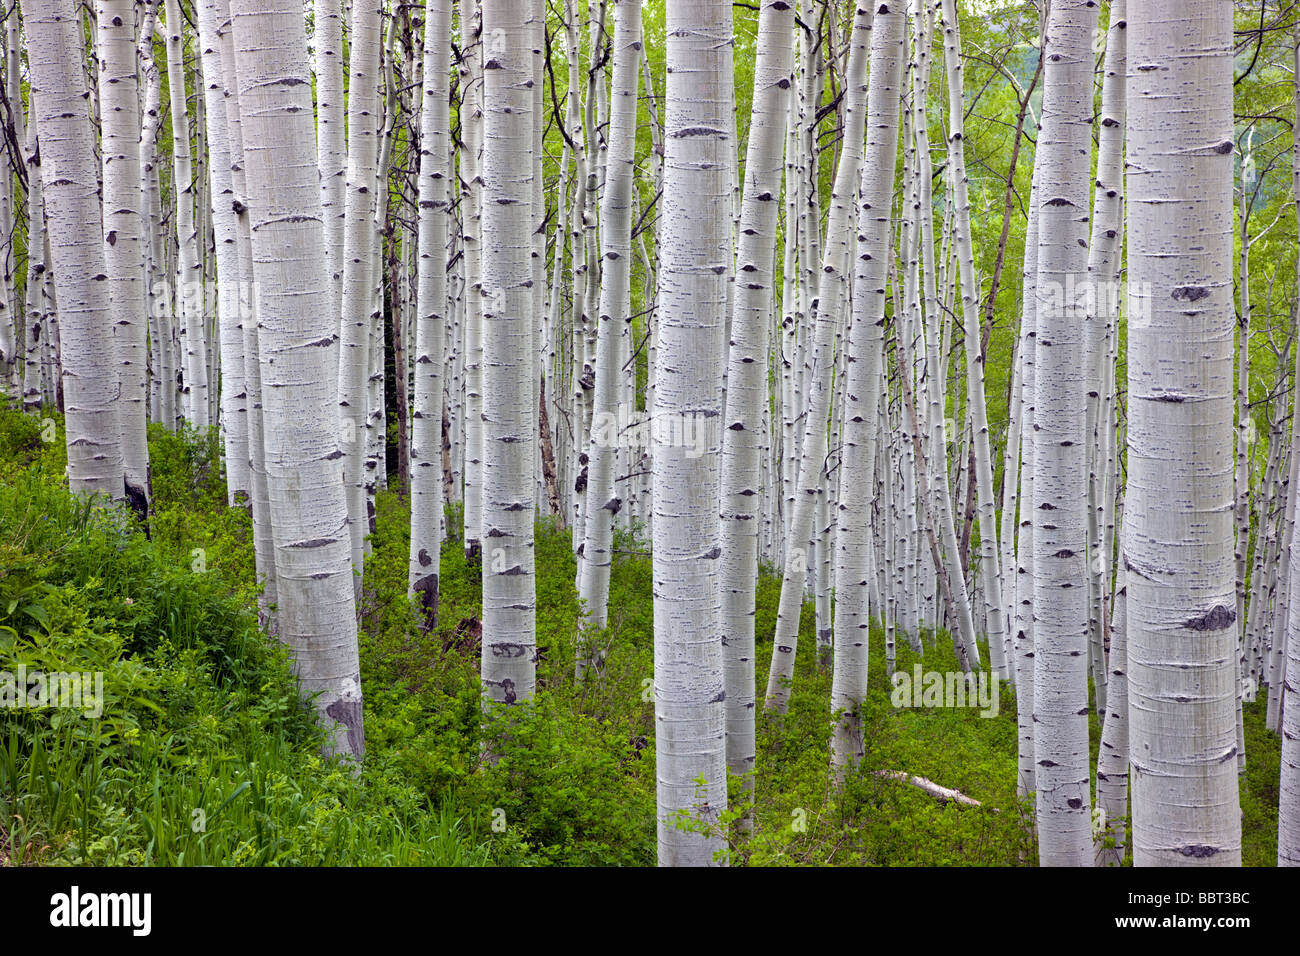 Aspen trees in springtime near Kebler Pass 9980 West Elk Mountains Ruby Range Gunnison National Forest Colorado - Stock Image